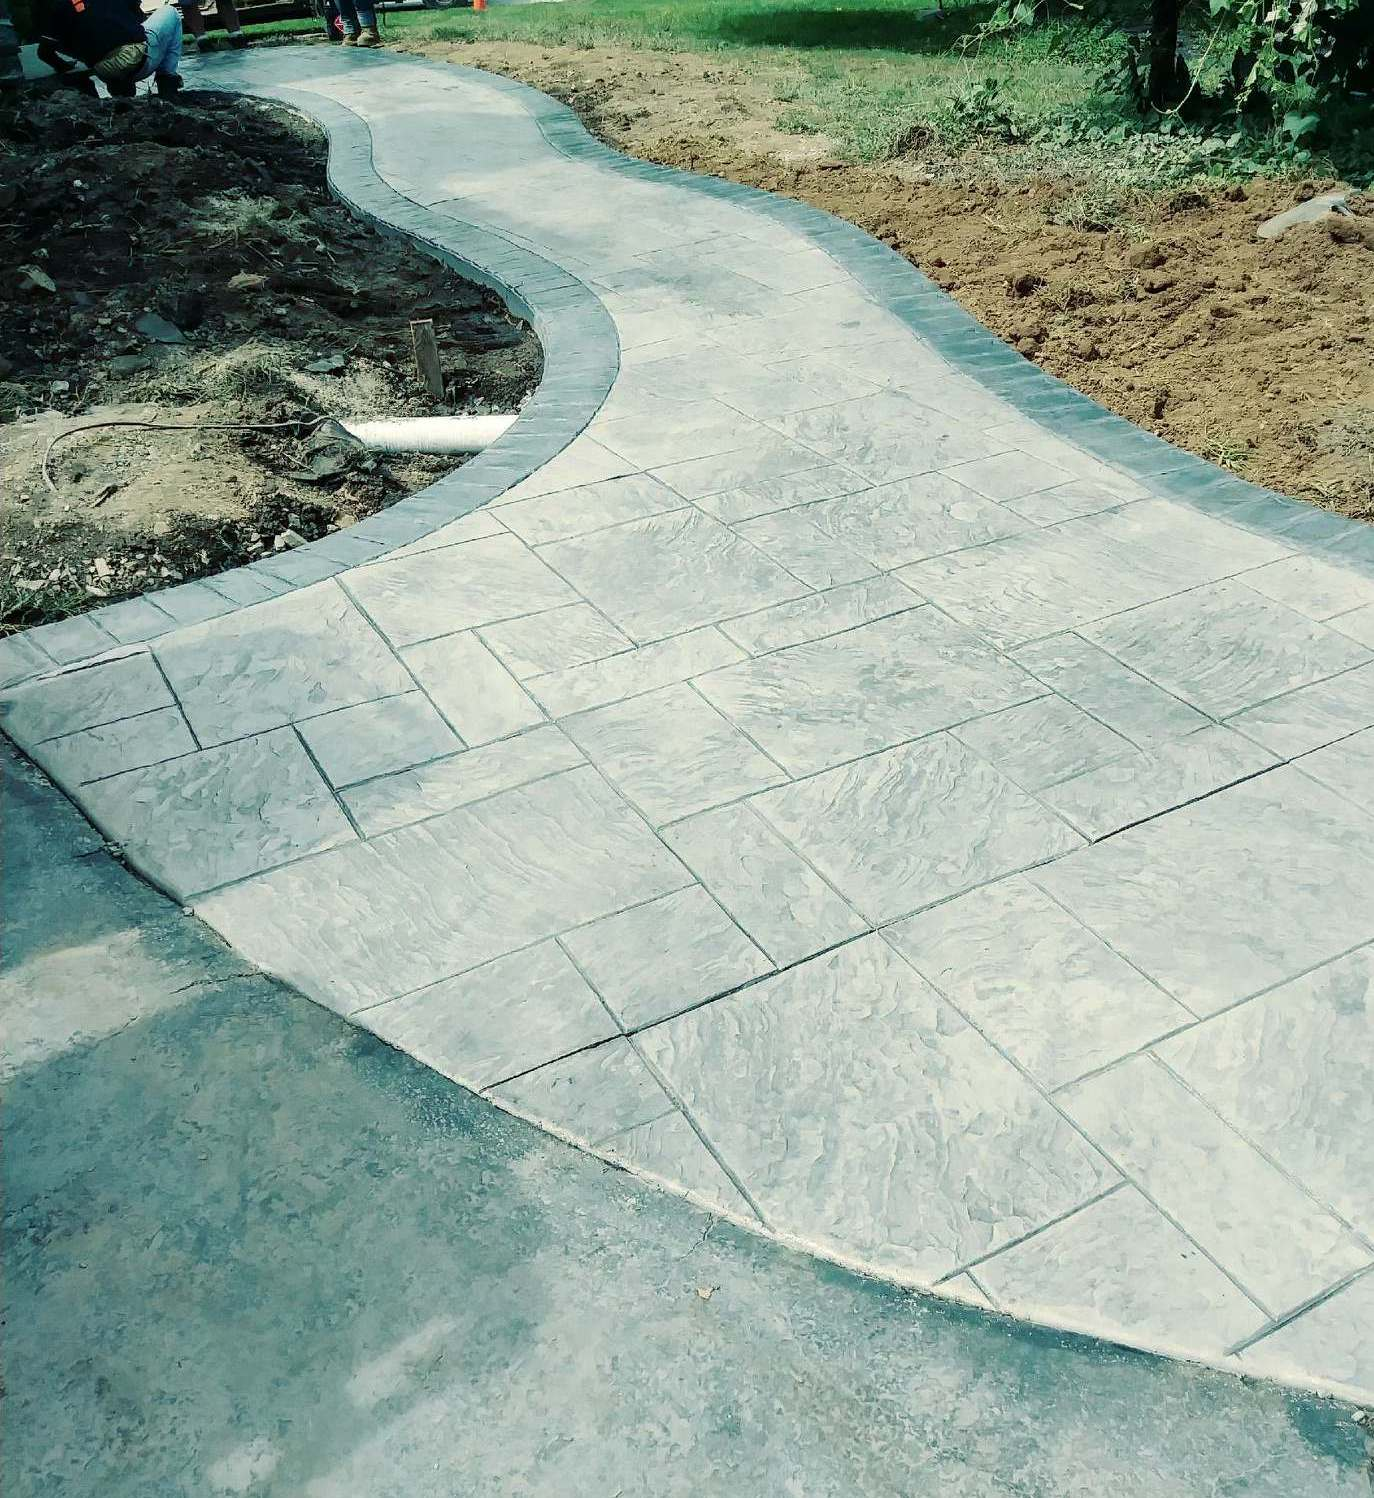 Royal Ashlar with cut stone border, walk flared at drive